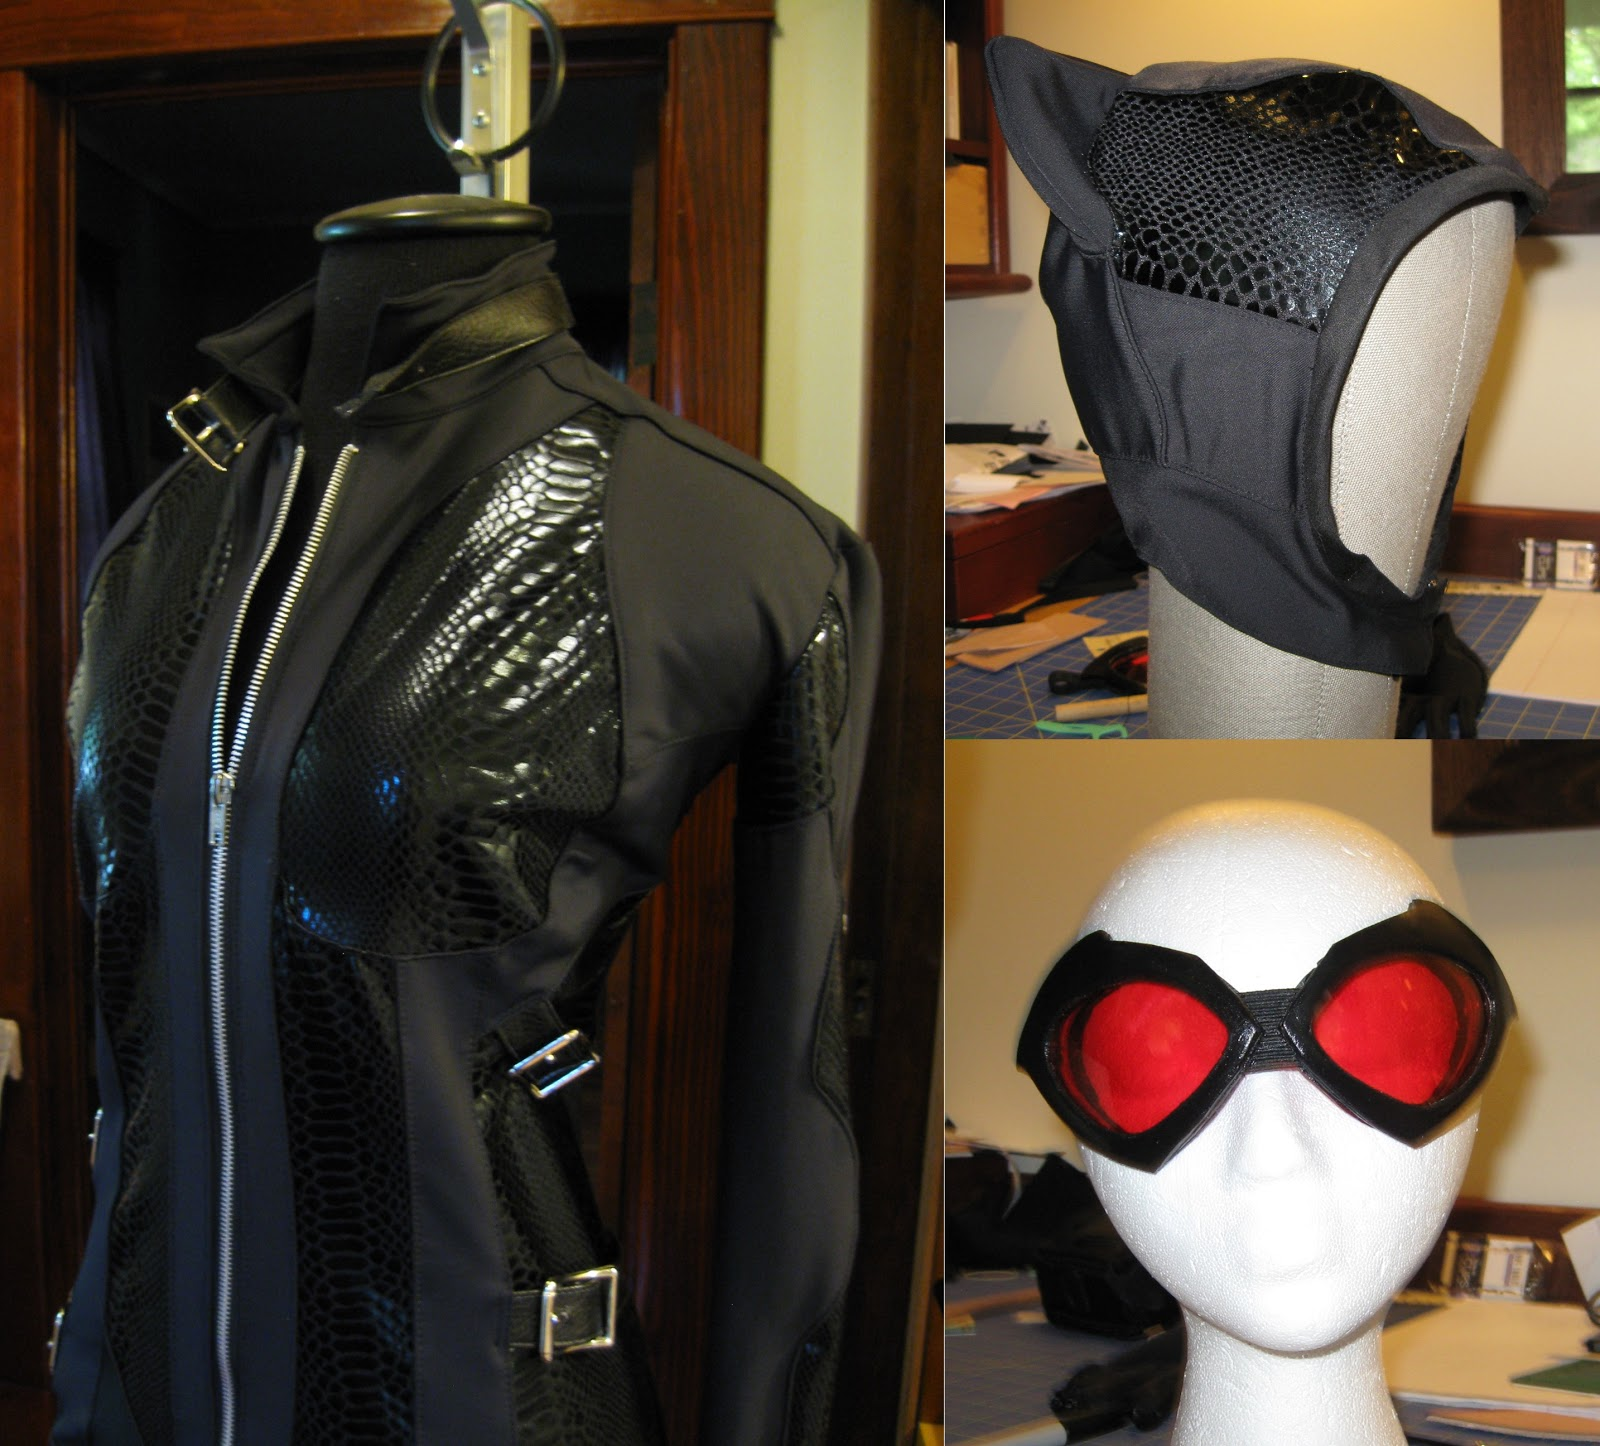 Extra details. & The Literary Assassin: Arkham City Catwoman costume